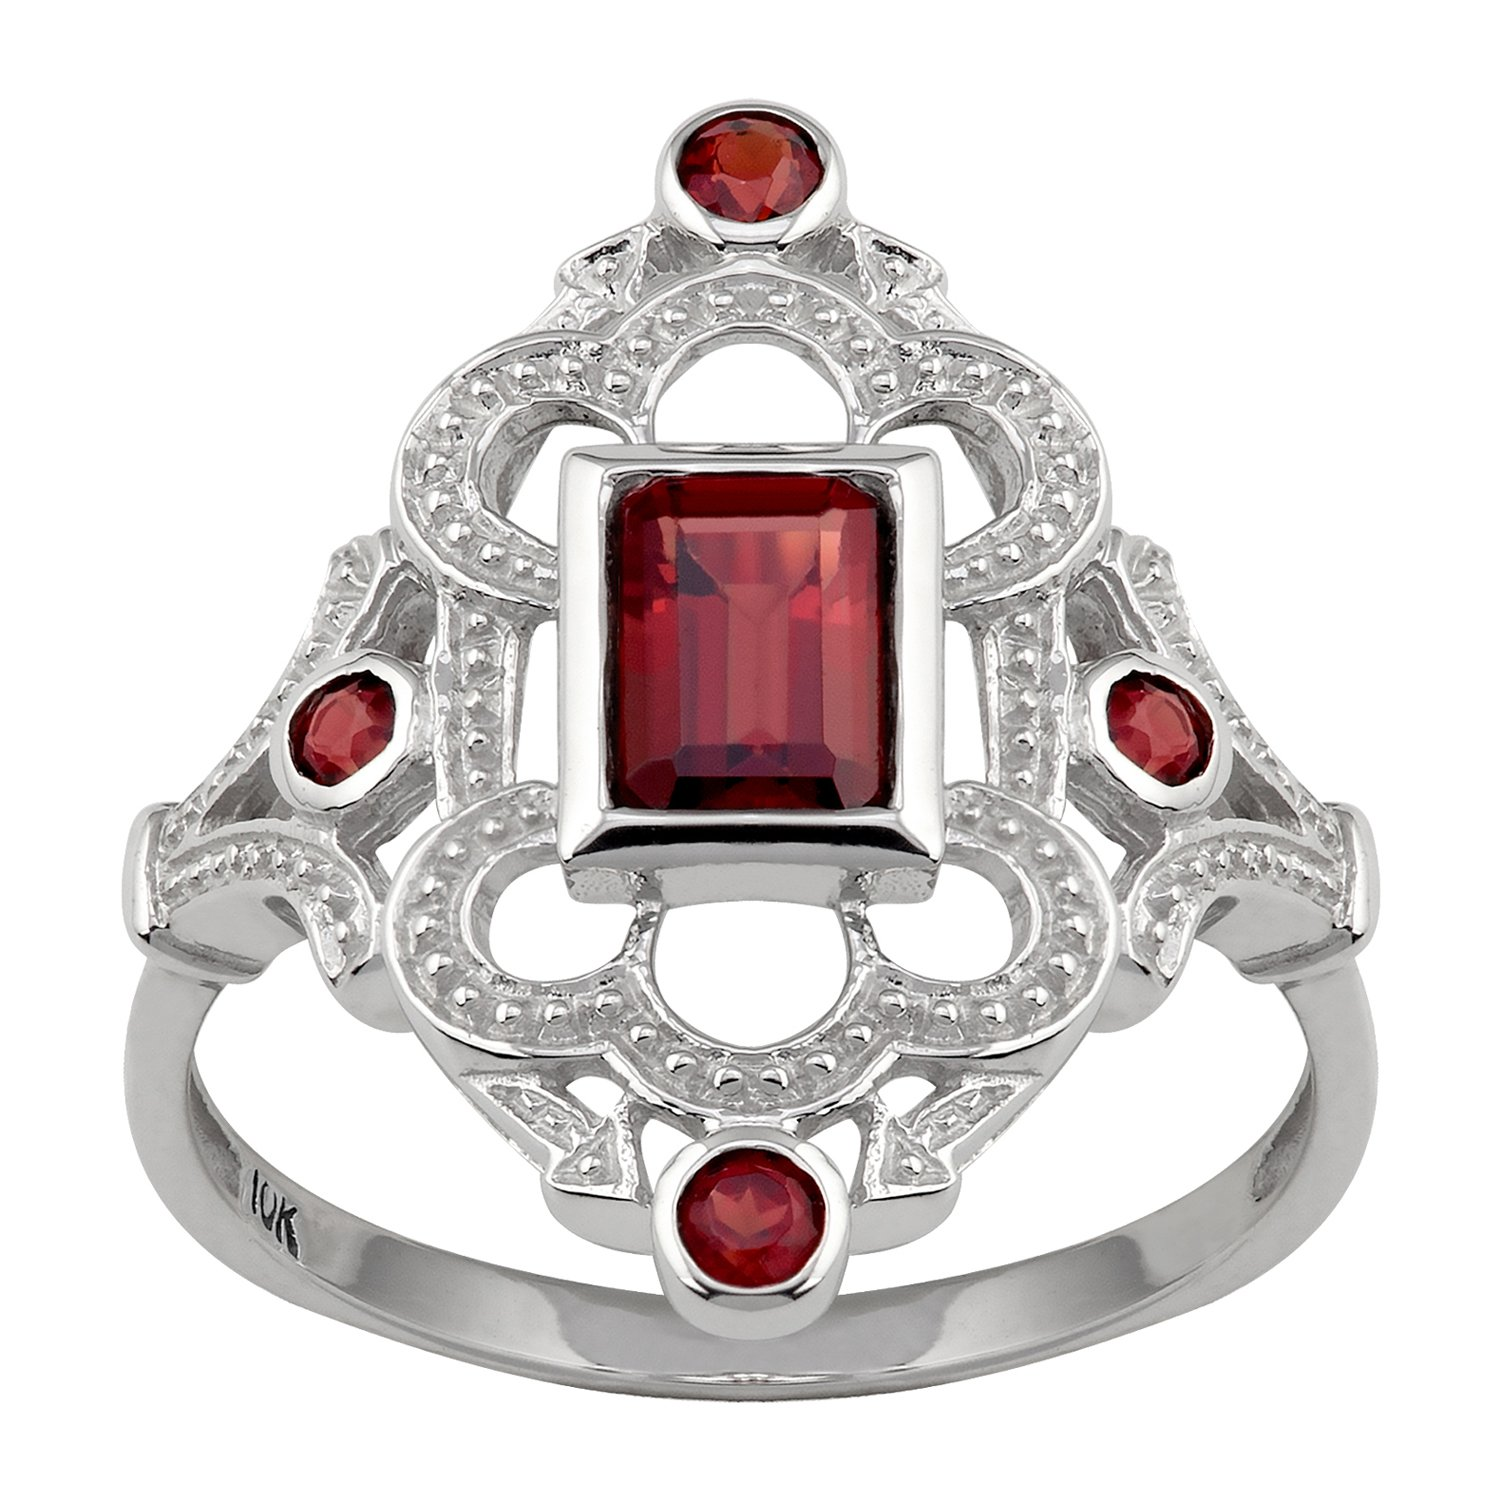 10k White Gold Vintage Style Genuine Garnet Ring by Instagems